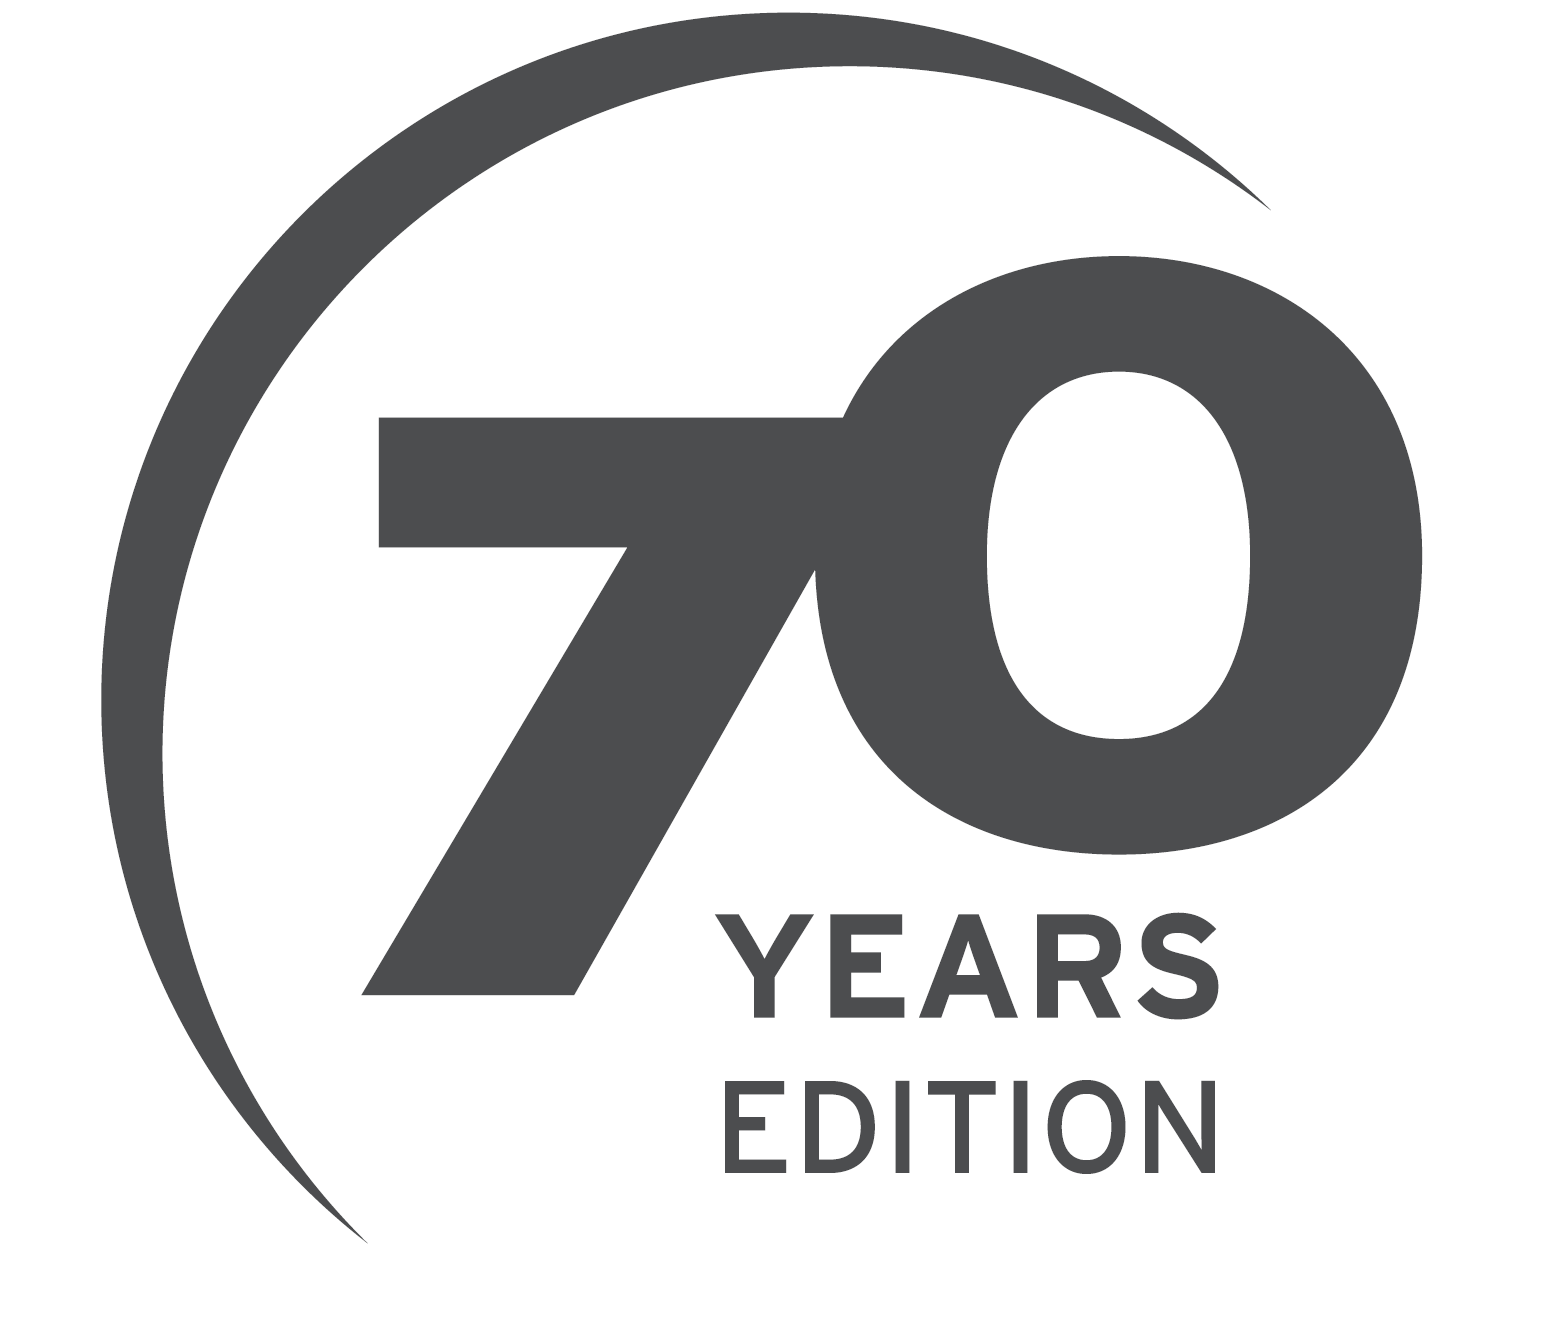 70 years Edition